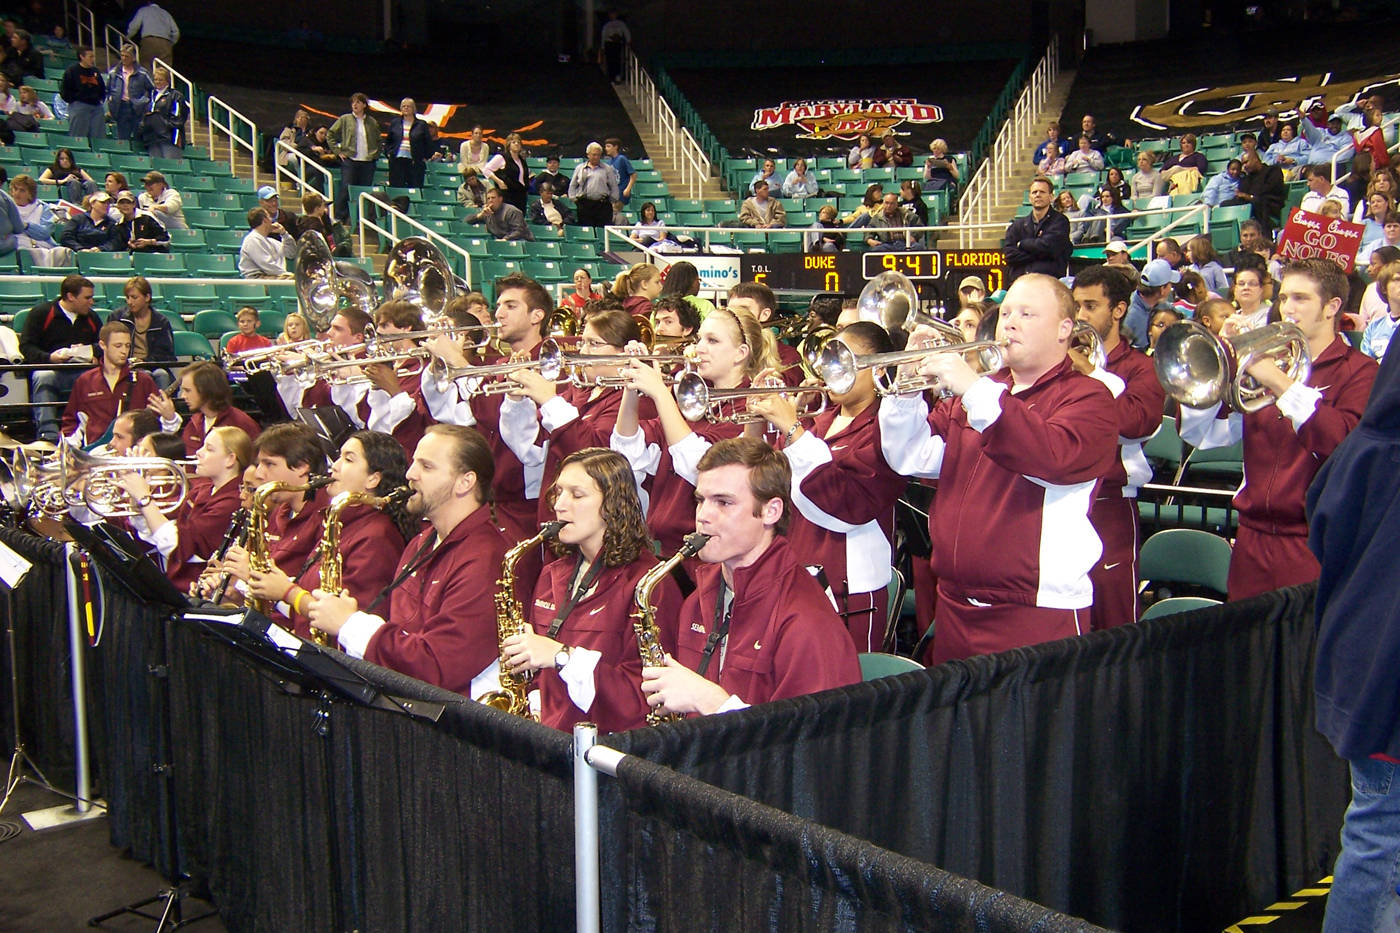 Seminole sound @ the ACC tournament